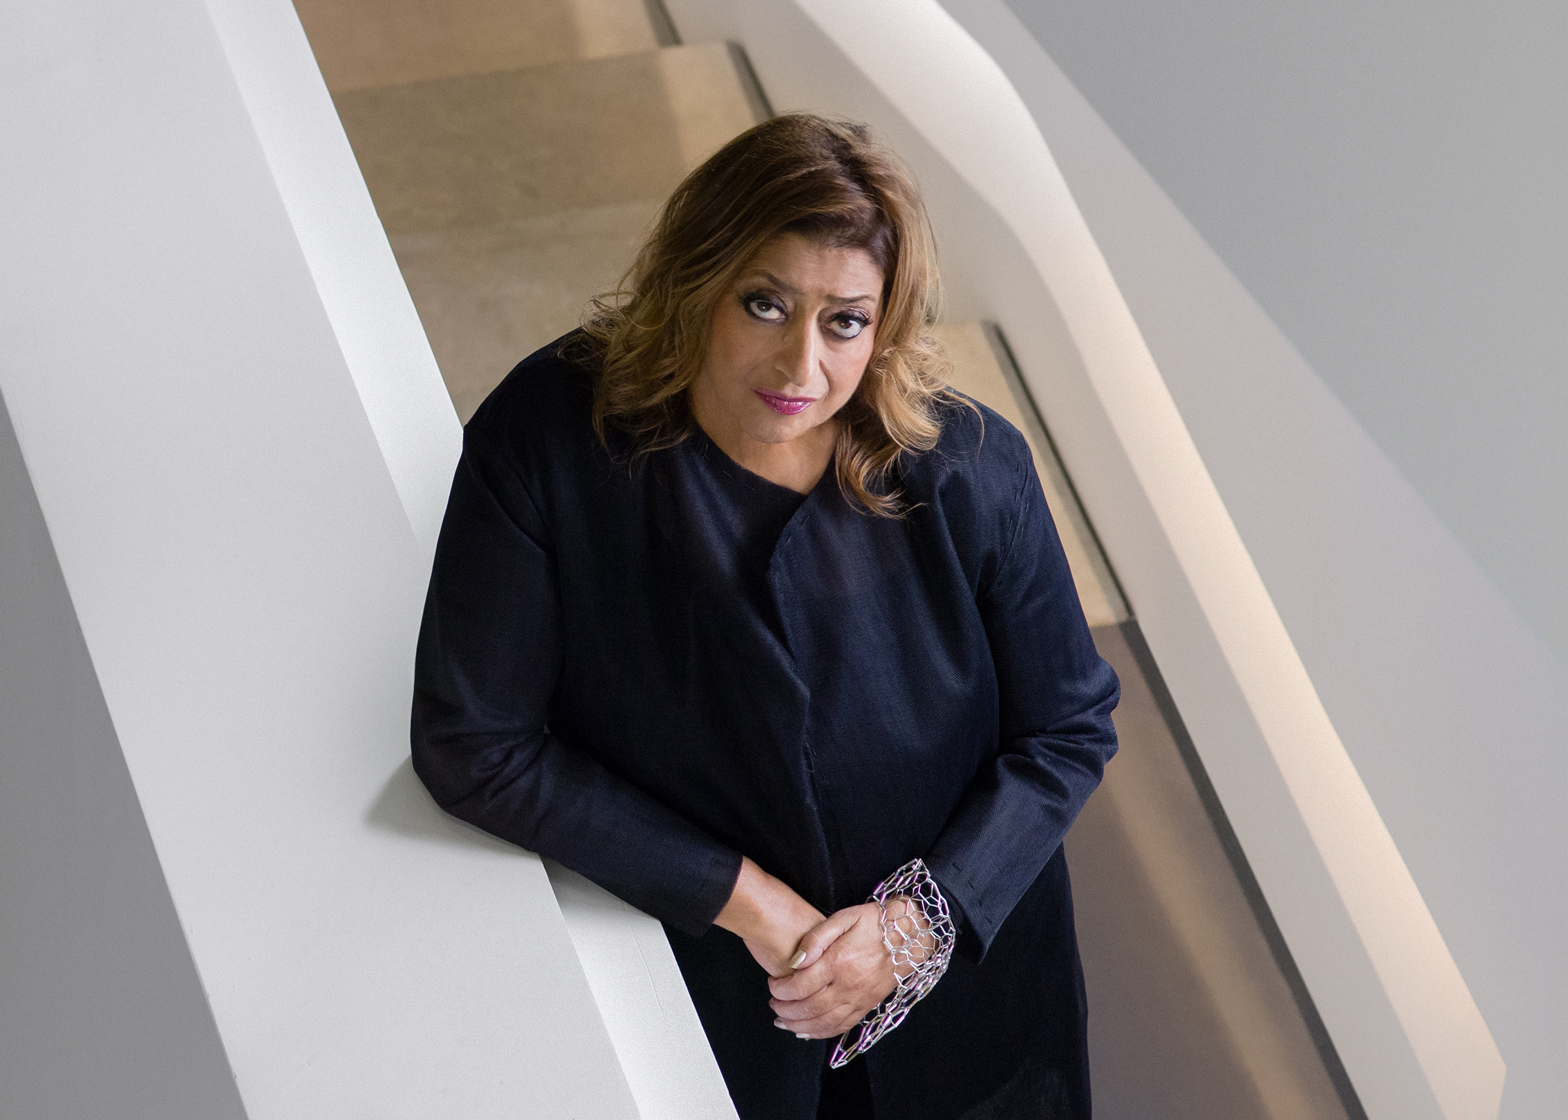 mvrdv zaha hadid a precious friend and colleague has died. Black Bedroom Furniture Sets. Home Design Ideas